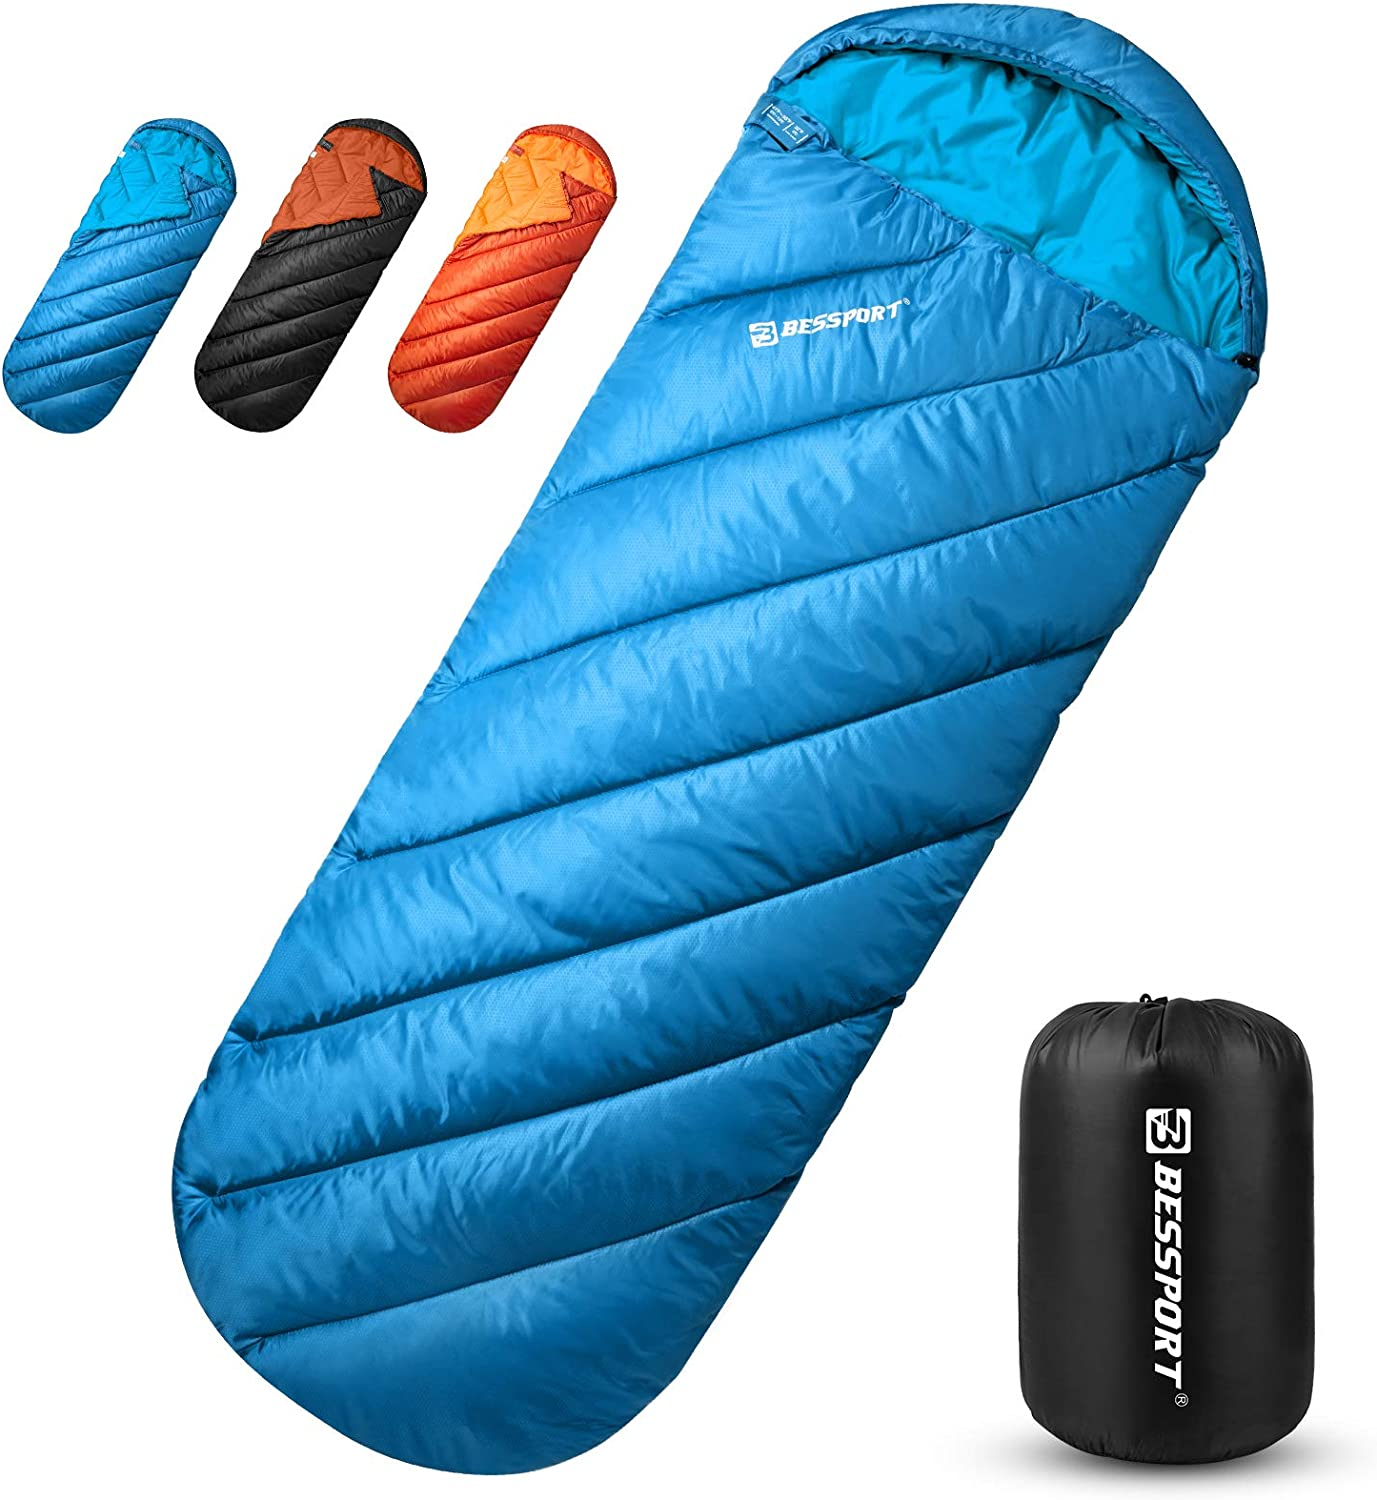 Bessport Camping Sleeping Bag -32℉/0℃ Extreme 3-4 Season Lightweight Backpacking Sleeping Bag for Hiking & Outdoor Great for Boys Girls and Adults